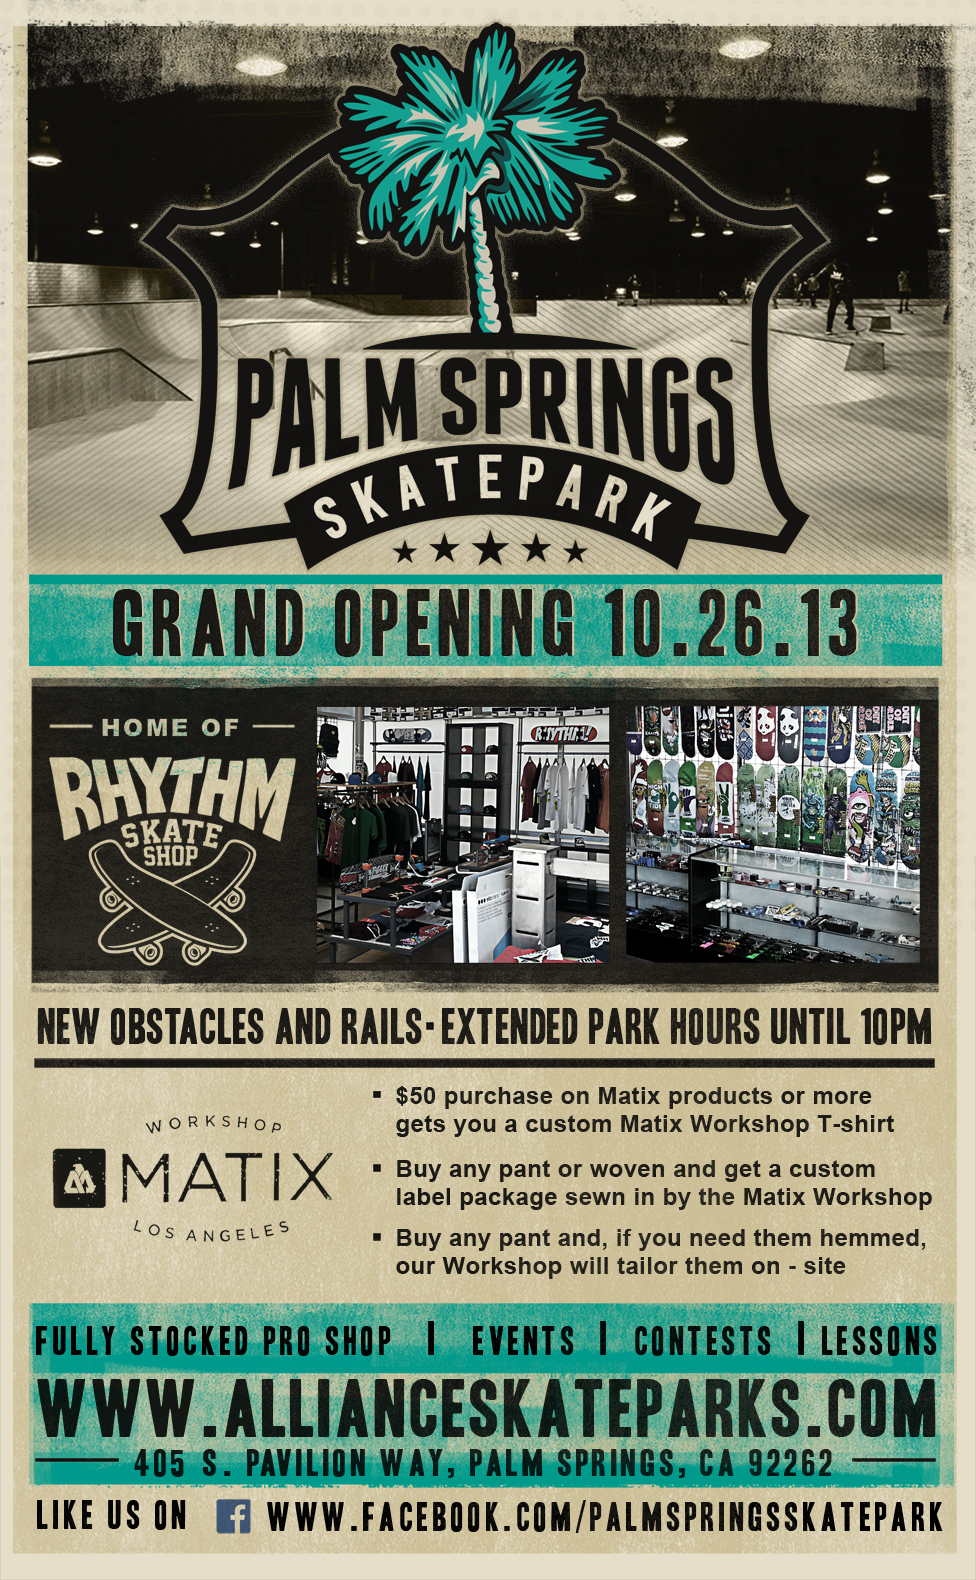 Be sure and make it out to the Grand Opening of Palm Springs Skatepark October 26th, 2013. This is our fourth location opening. Thanks to Spohn Ranch for the dope renovations. California Skatepark, California Skateparks, Alliance Skatepark, Skateparks in Cali, Cali Parks, Skate Parks, Skateboarding, Skate, Skate Life, Grand Opening, Best Skateparks, Rhythm Skate Shop, Rhythm, Dallas Skateparks, Dallas Skate Parks, Skate Parks in Dallas, Dallas TX, Palm Springs CA, Fontana CA, Fontana Skate Park, Fontana CA Skateboarding, Fontana Skate Shop, All